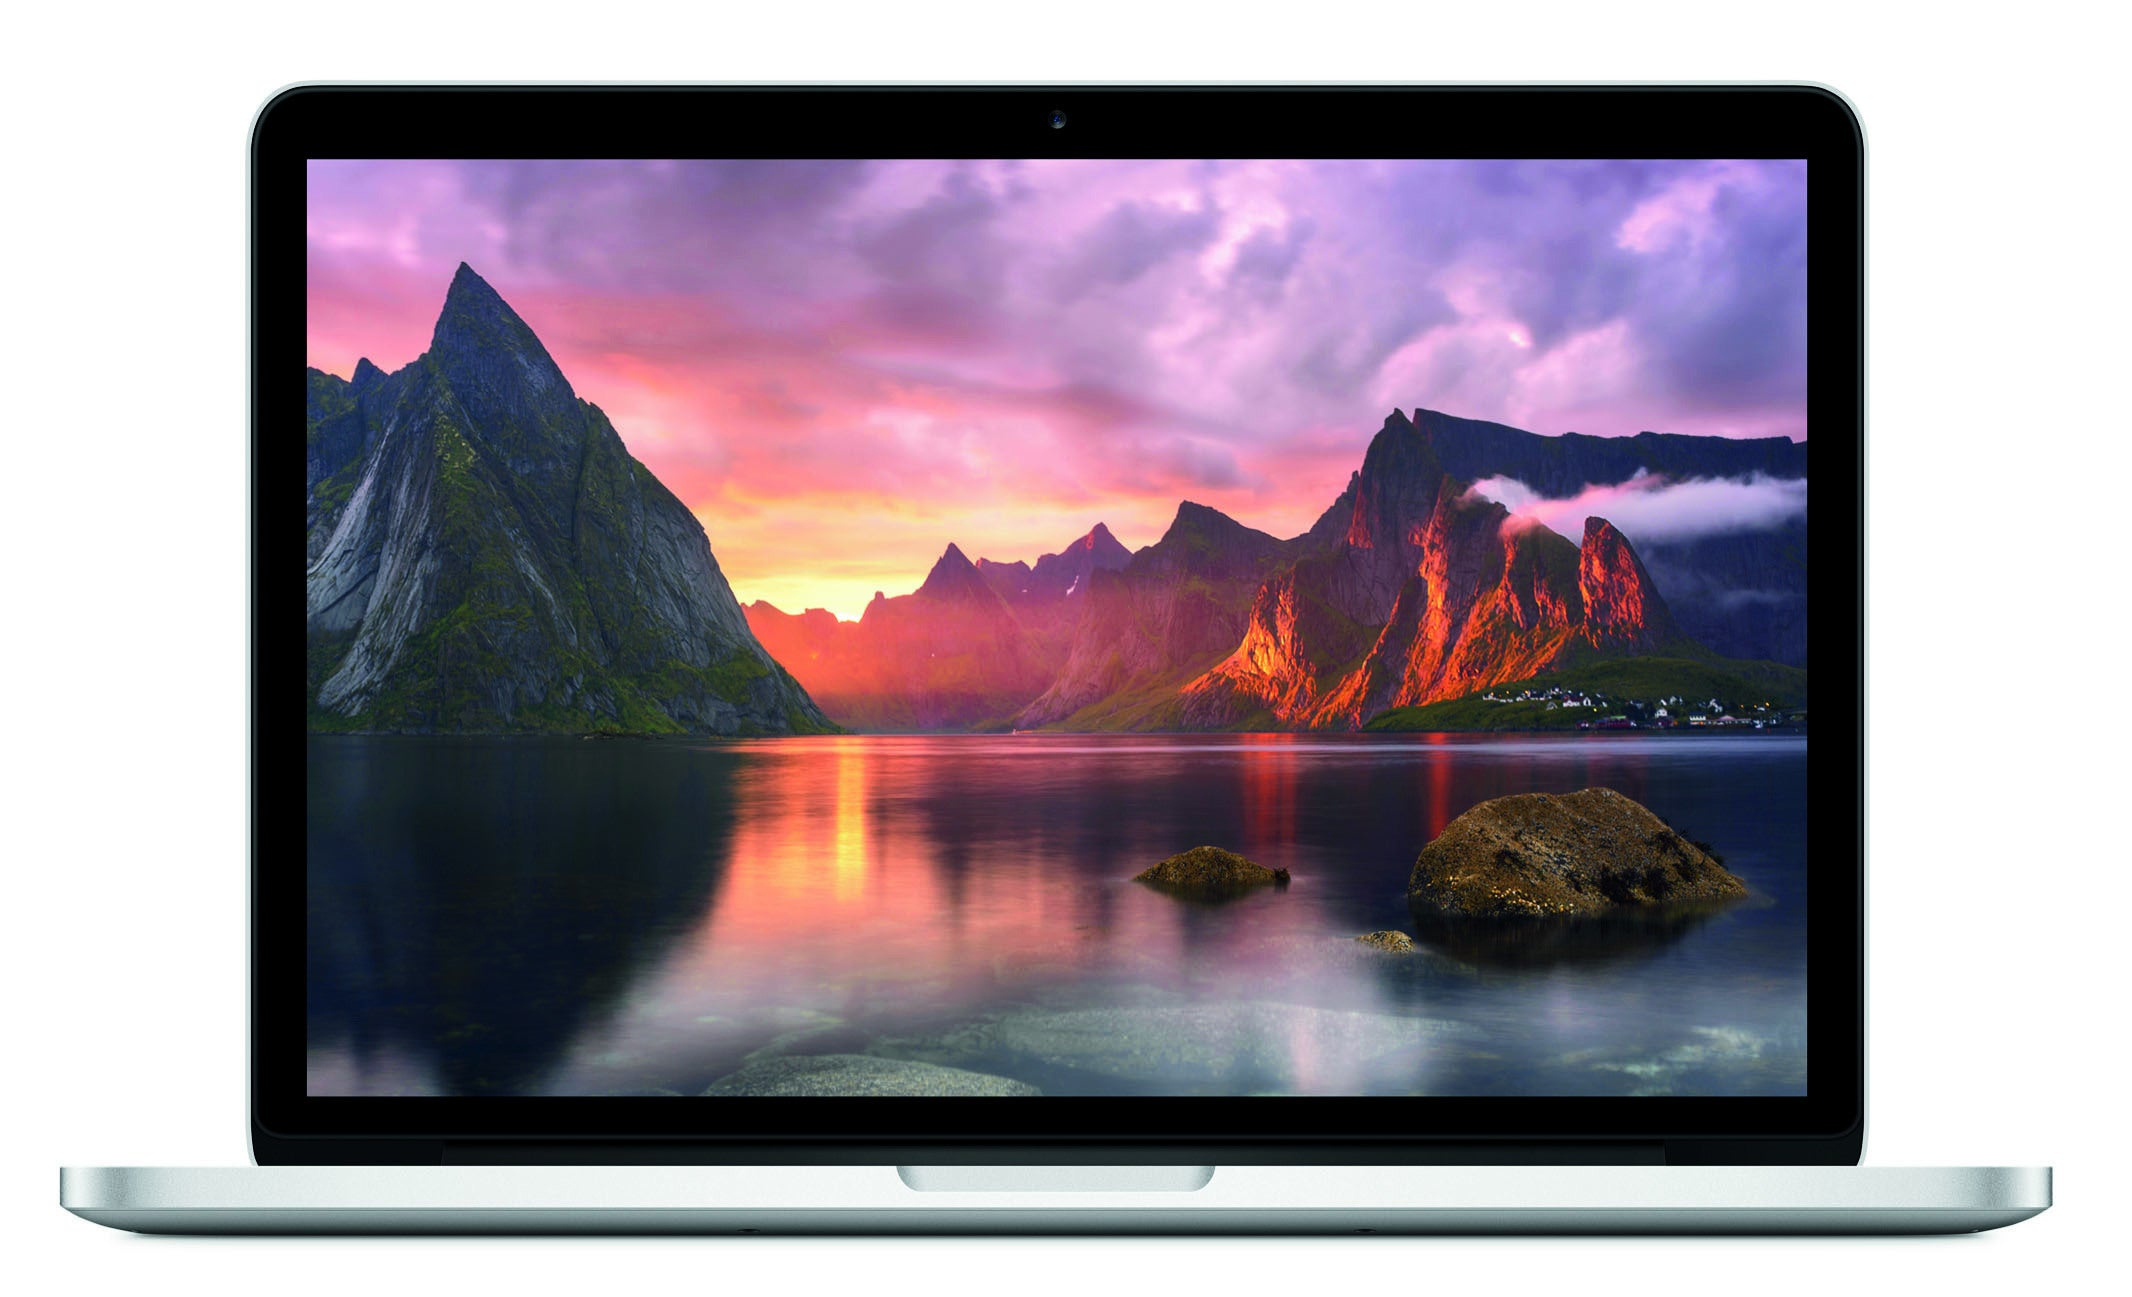 Which one is the best suited for me, a macbook pro? A dell/ hp/ acer laptop?